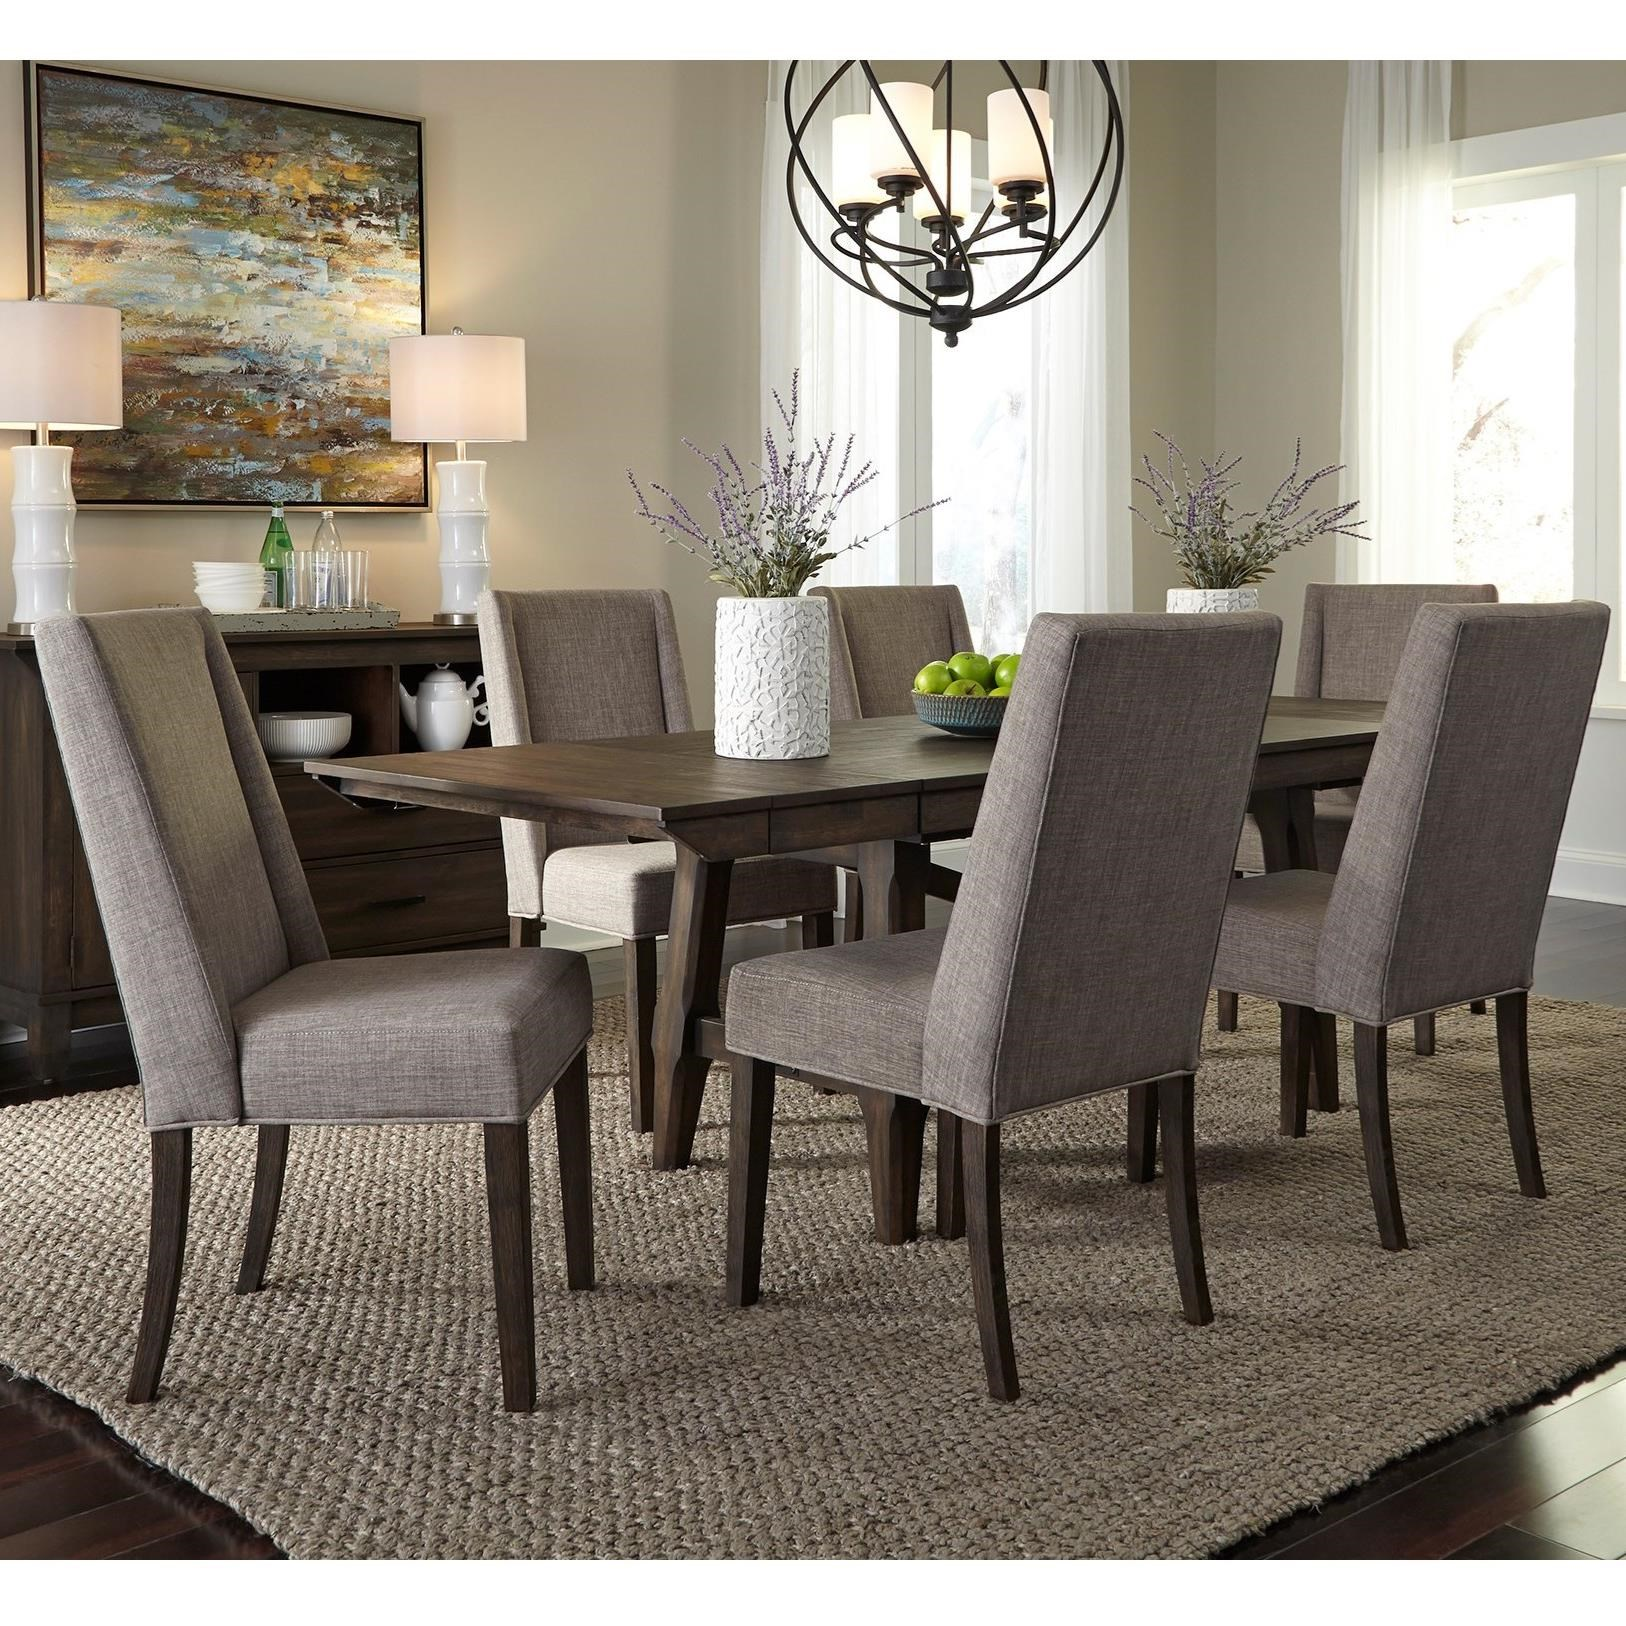 Double Bridge 7 Piece Trestle Table Set by Liberty Furniture at Northeast Factory Direct